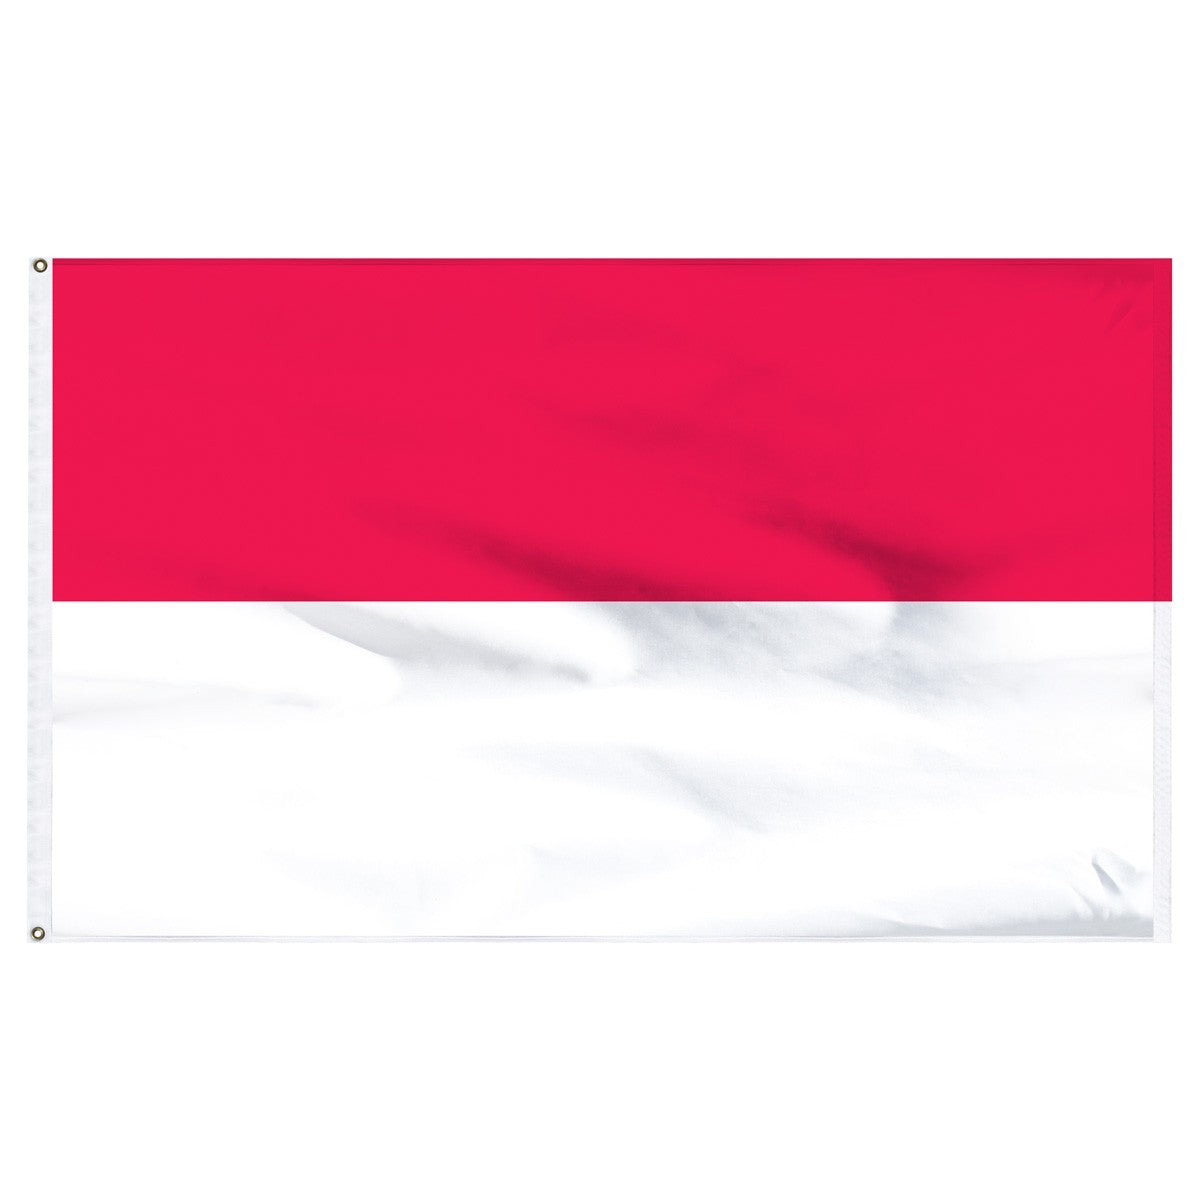 Indonesia 3' x 5' Outdoor Nylon Flag